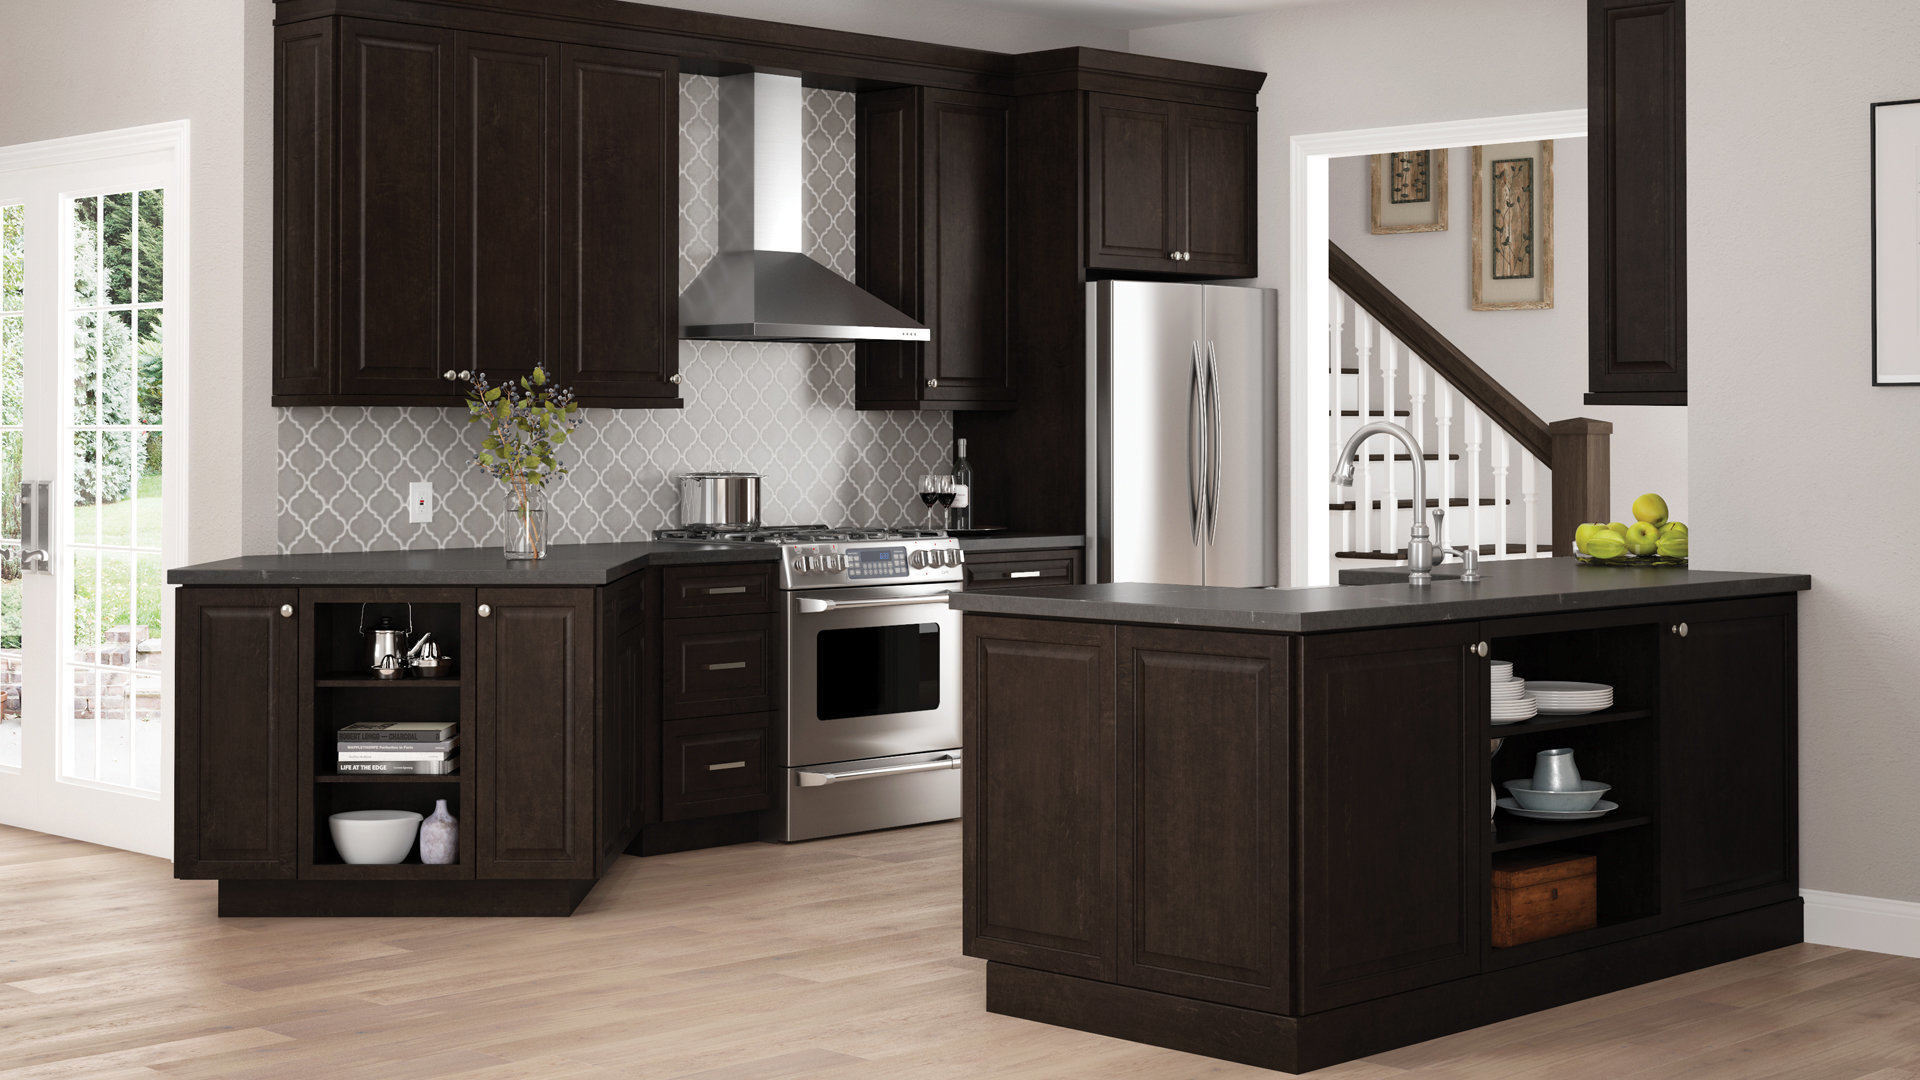 The Home Depot Kitchen Cabinets Gretna Wall Cabinets In Espresso Kitchen The Home Depot